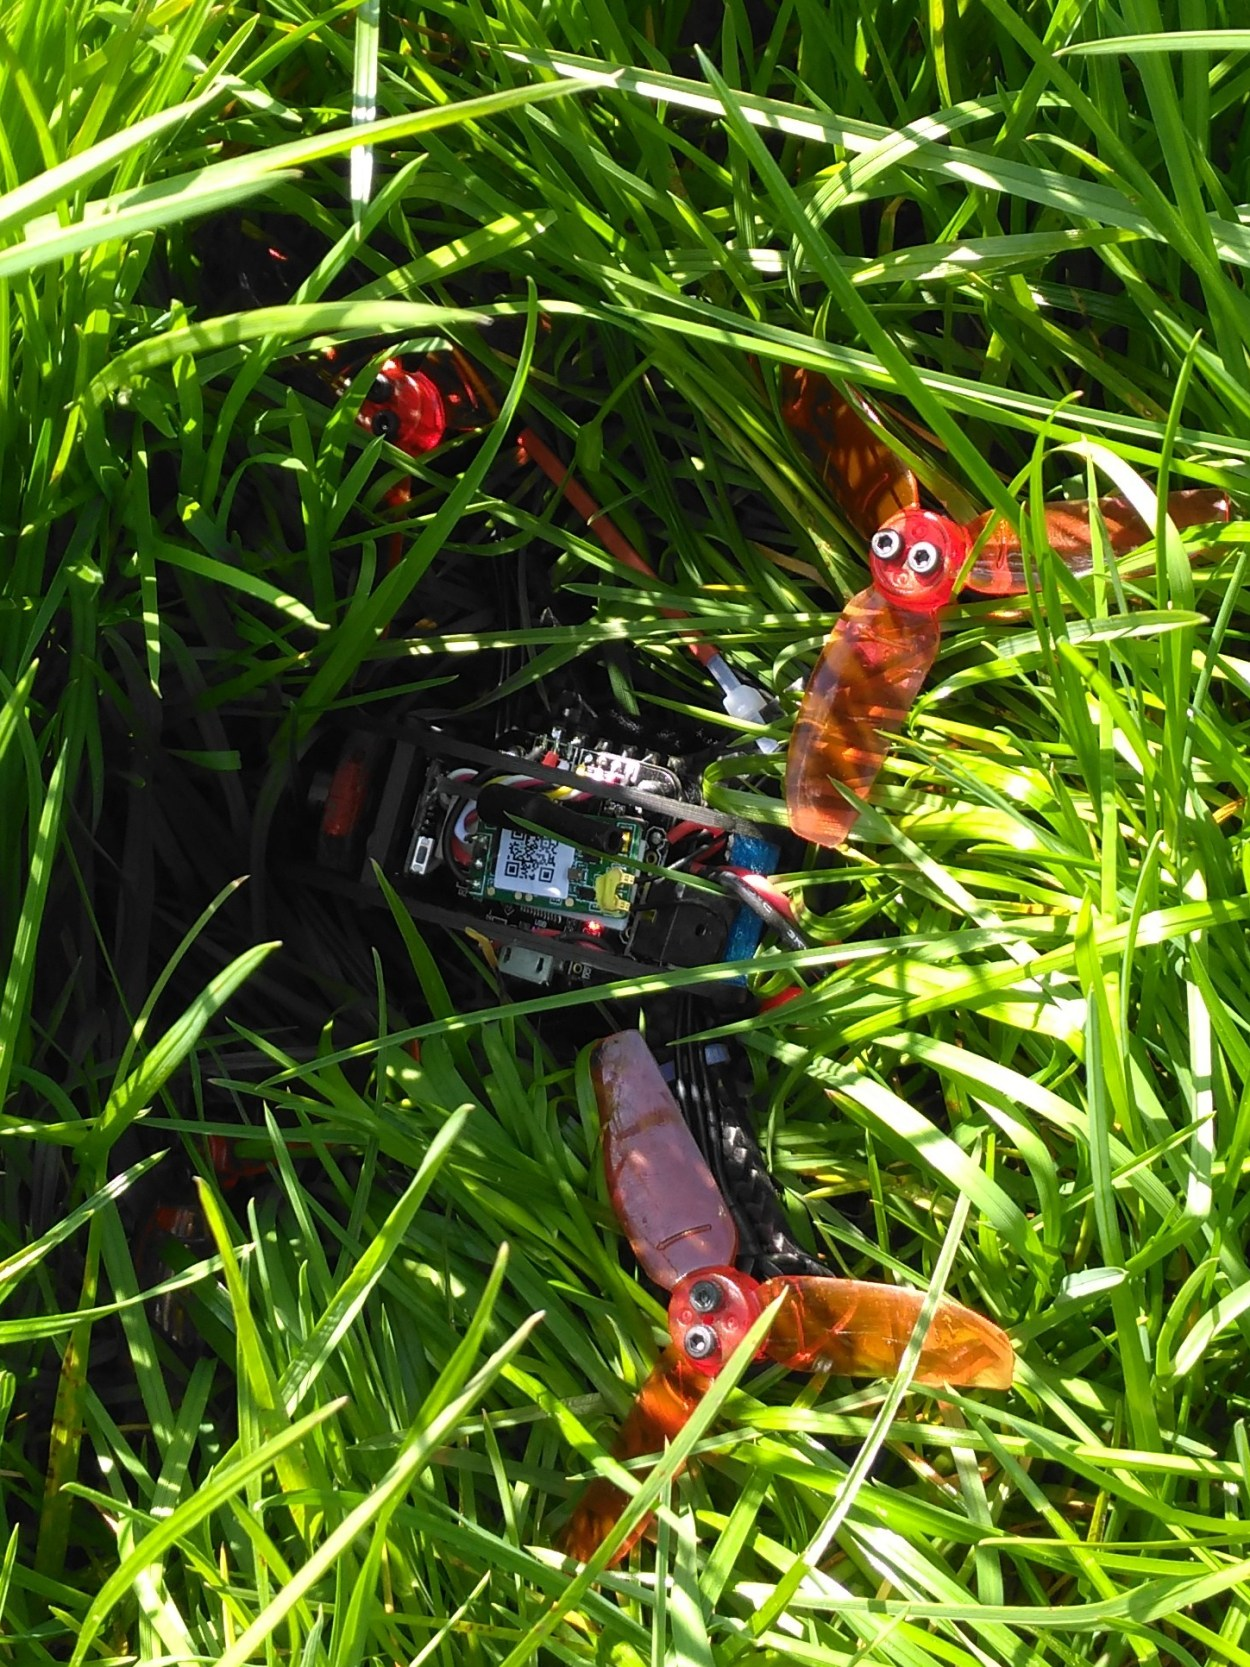 microquad_Lost_In_Grass_2.jpg